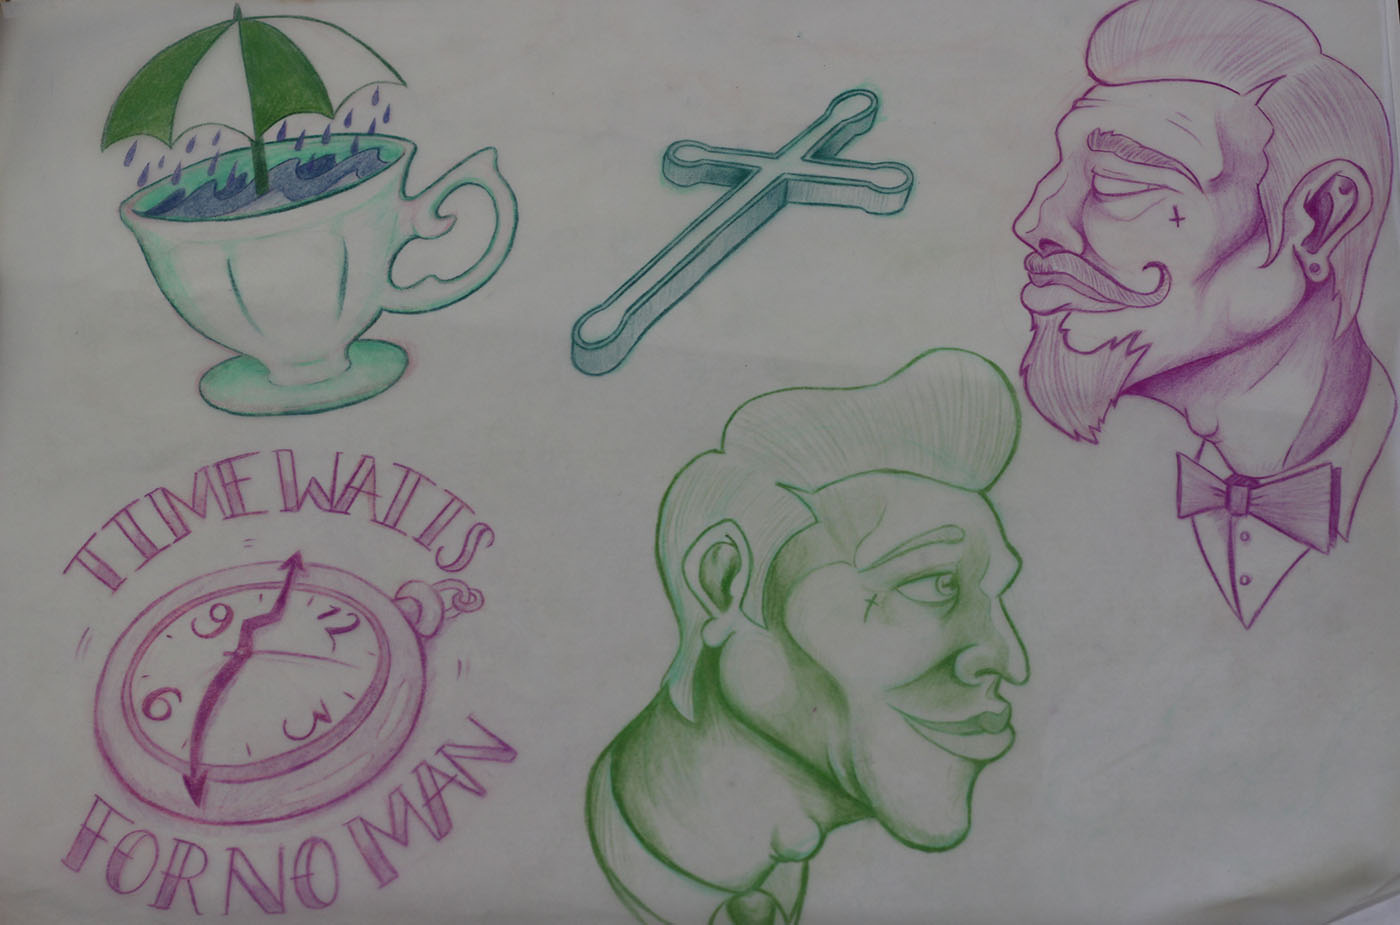 Kamen's Sketches: Clock, Cup & Gentlemen